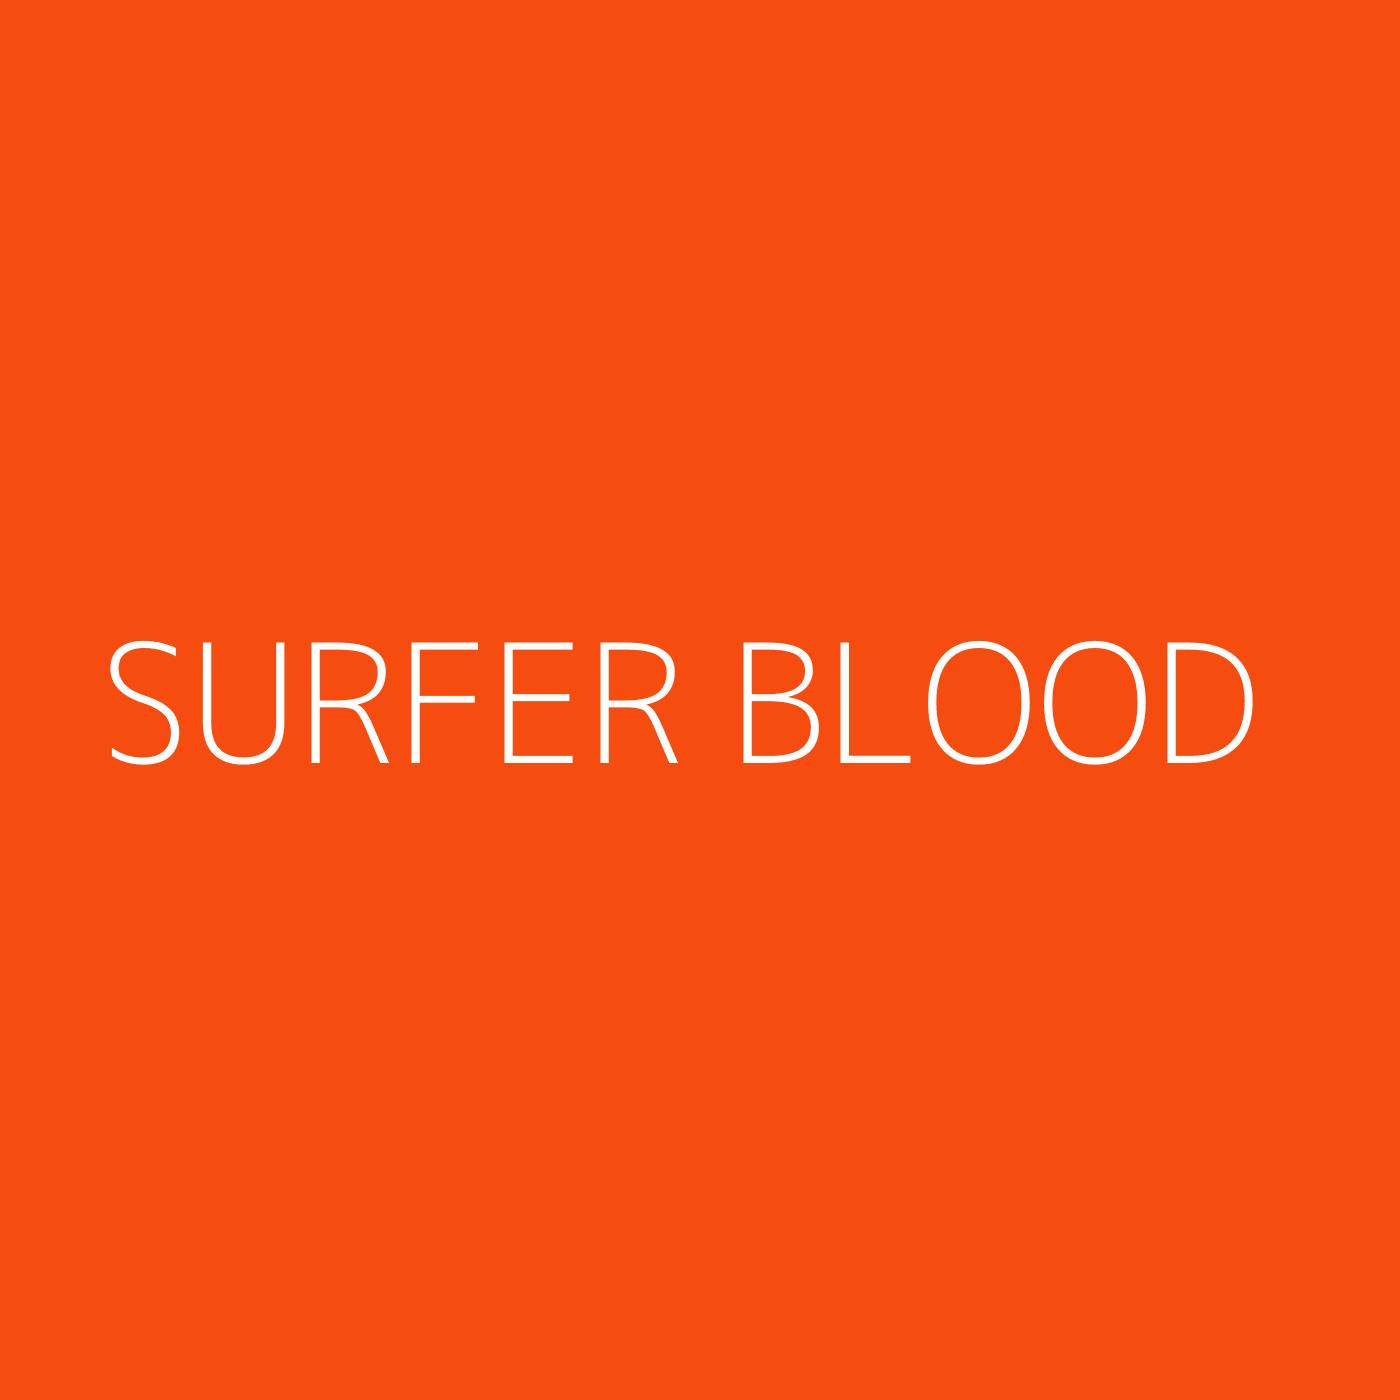 Surfer Blood Playlist Artwork